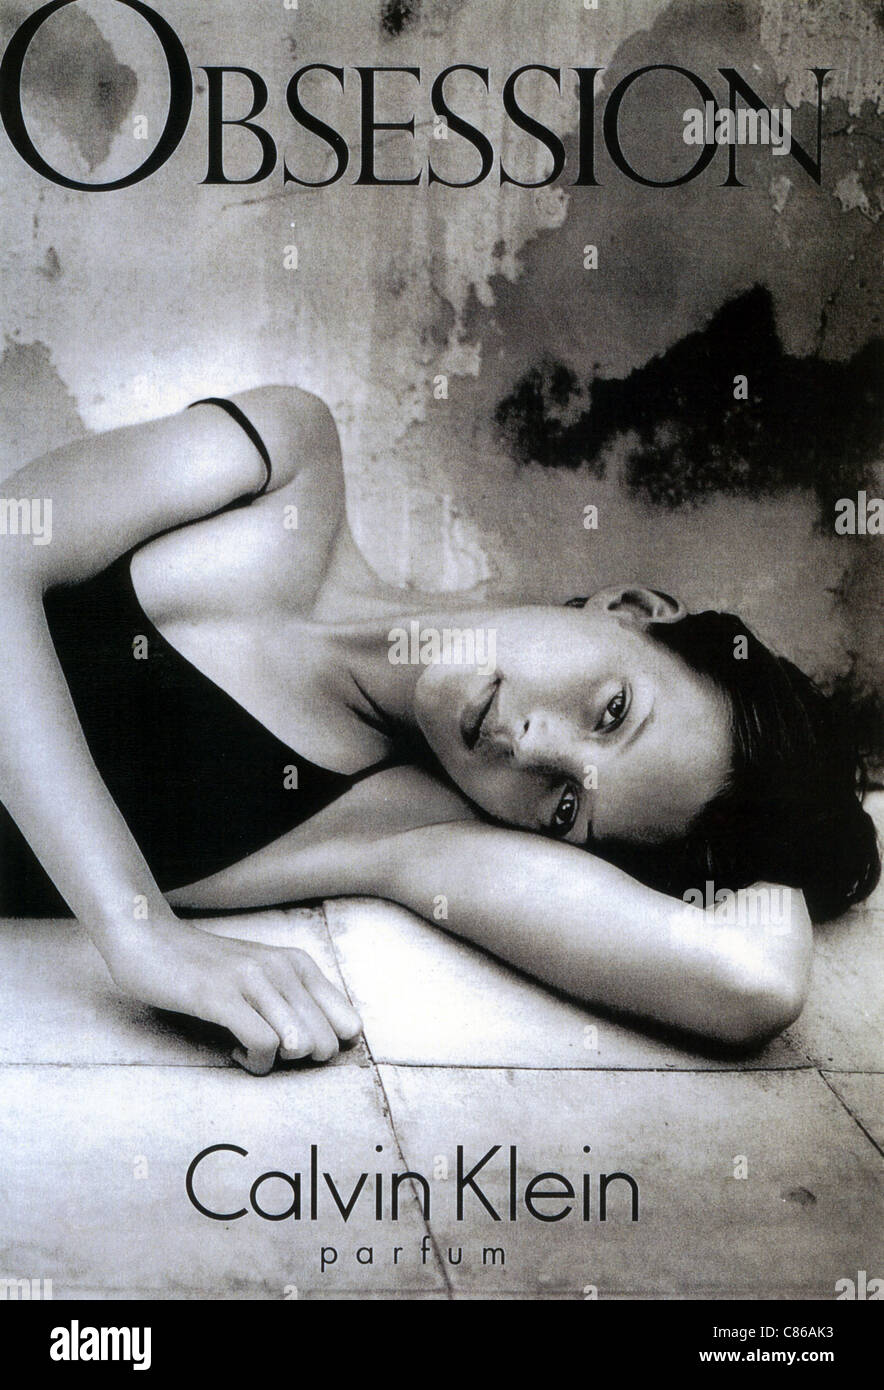 KATE MOSS English fashion model in a 1996 advert for the Obsession perfume by Calvin Klein - Stock Image